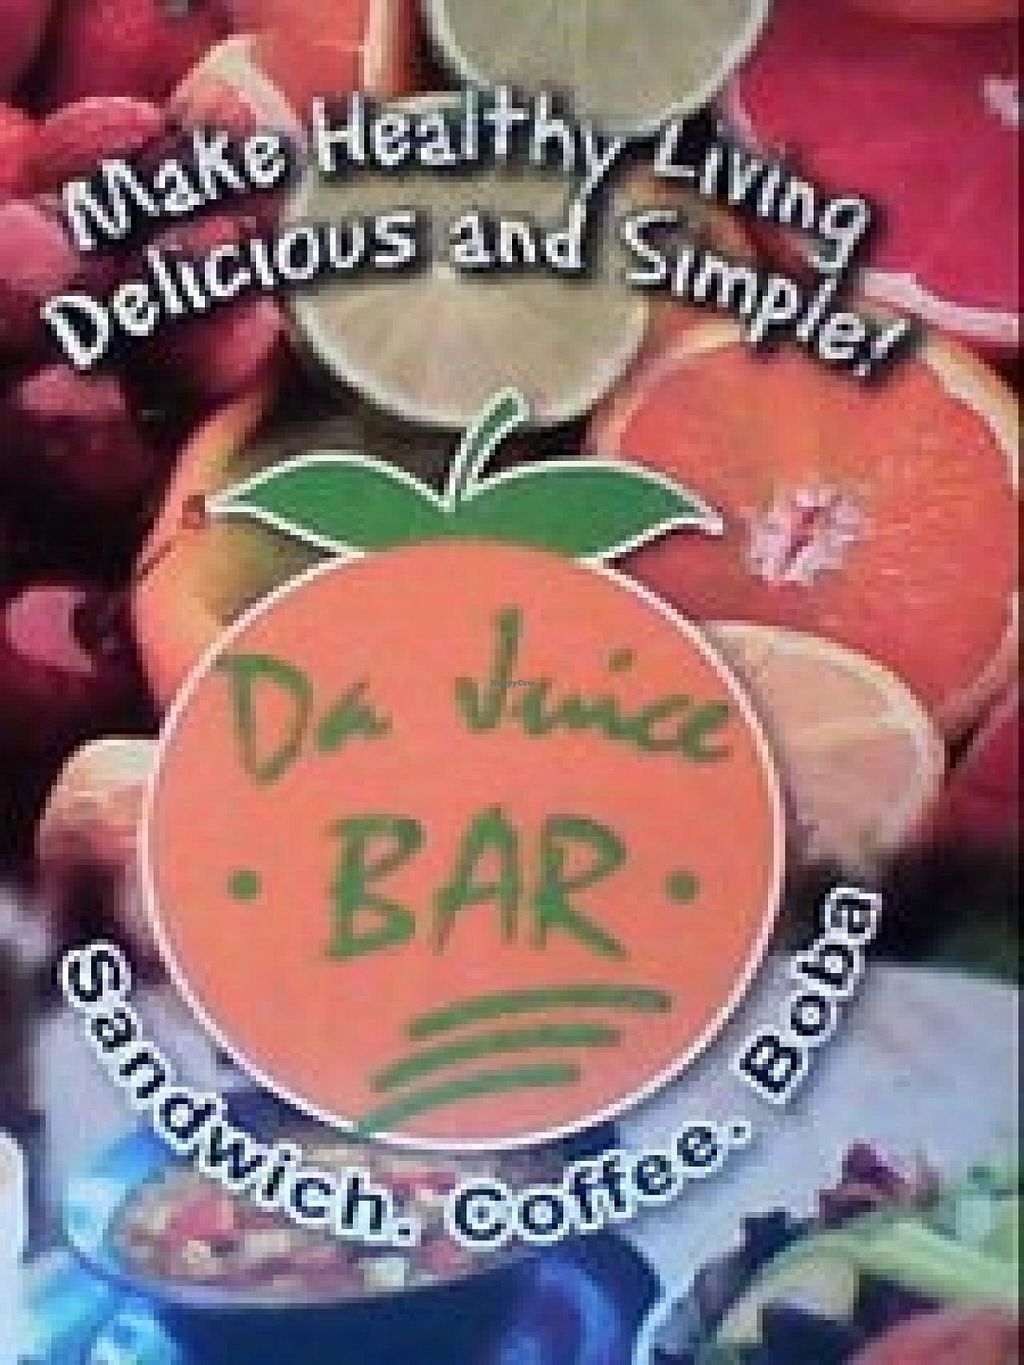 """Photo of Da Juice Bar  by <a href=""""/members/profile/community"""">community</a> <br/>Da Juice Bar  <br/> March 15, 2015  - <a href='/contact/abuse/image/26774/95772'>Report</a>"""